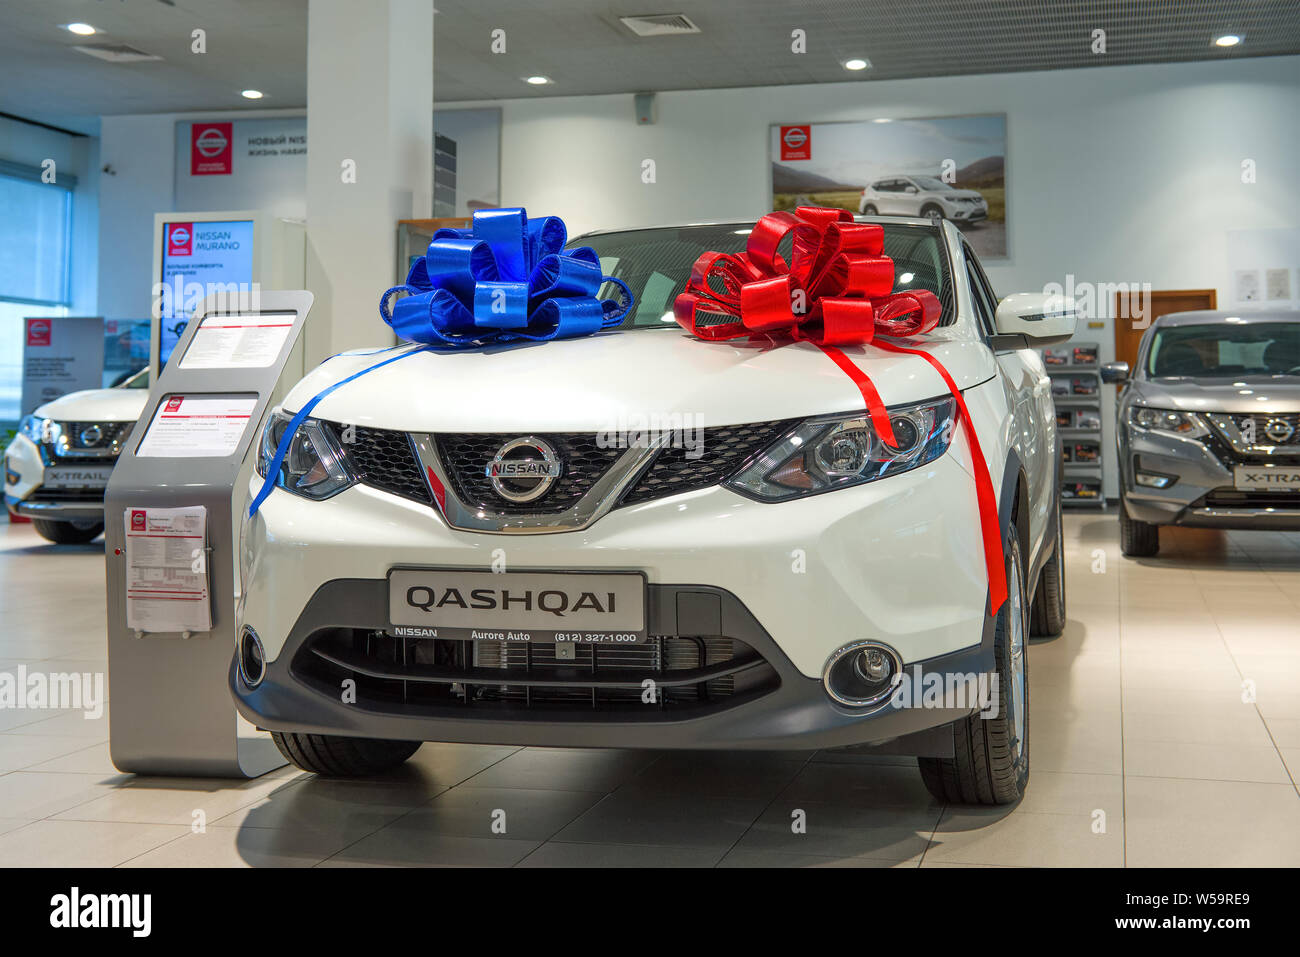 ST. PETERSBURG, RUSSIA - JULY 09, 2019: The sold car Nissan Qashqai (2019) with two bows of red and blue color in car showroom Stock Photo